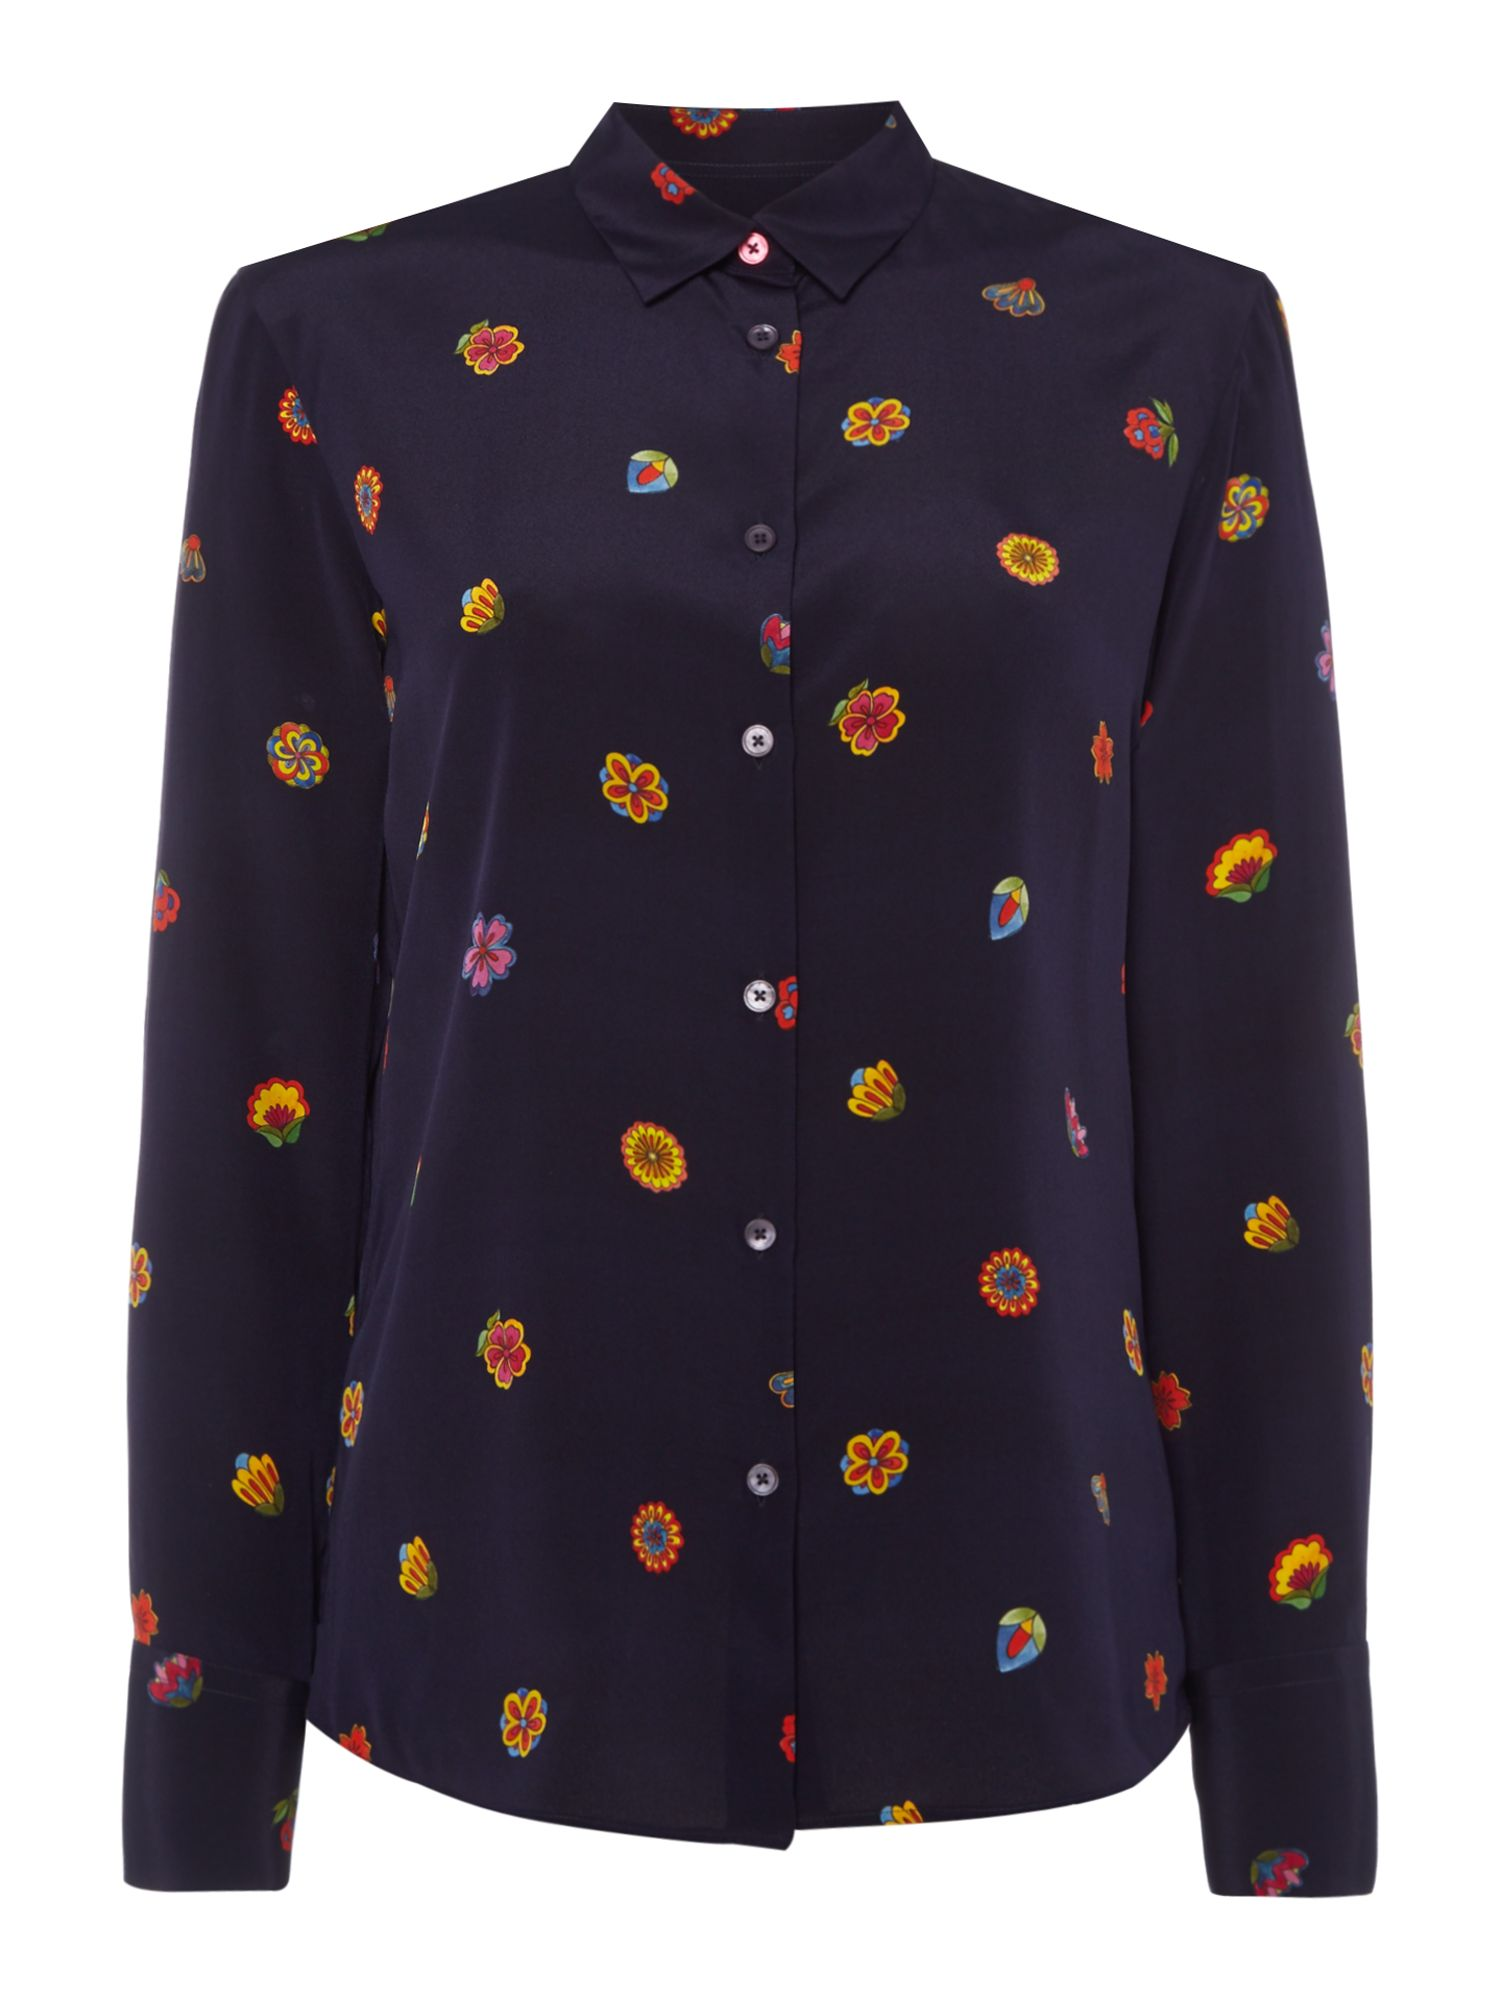 PS By Paul Smith Kyoto print shirt, Black